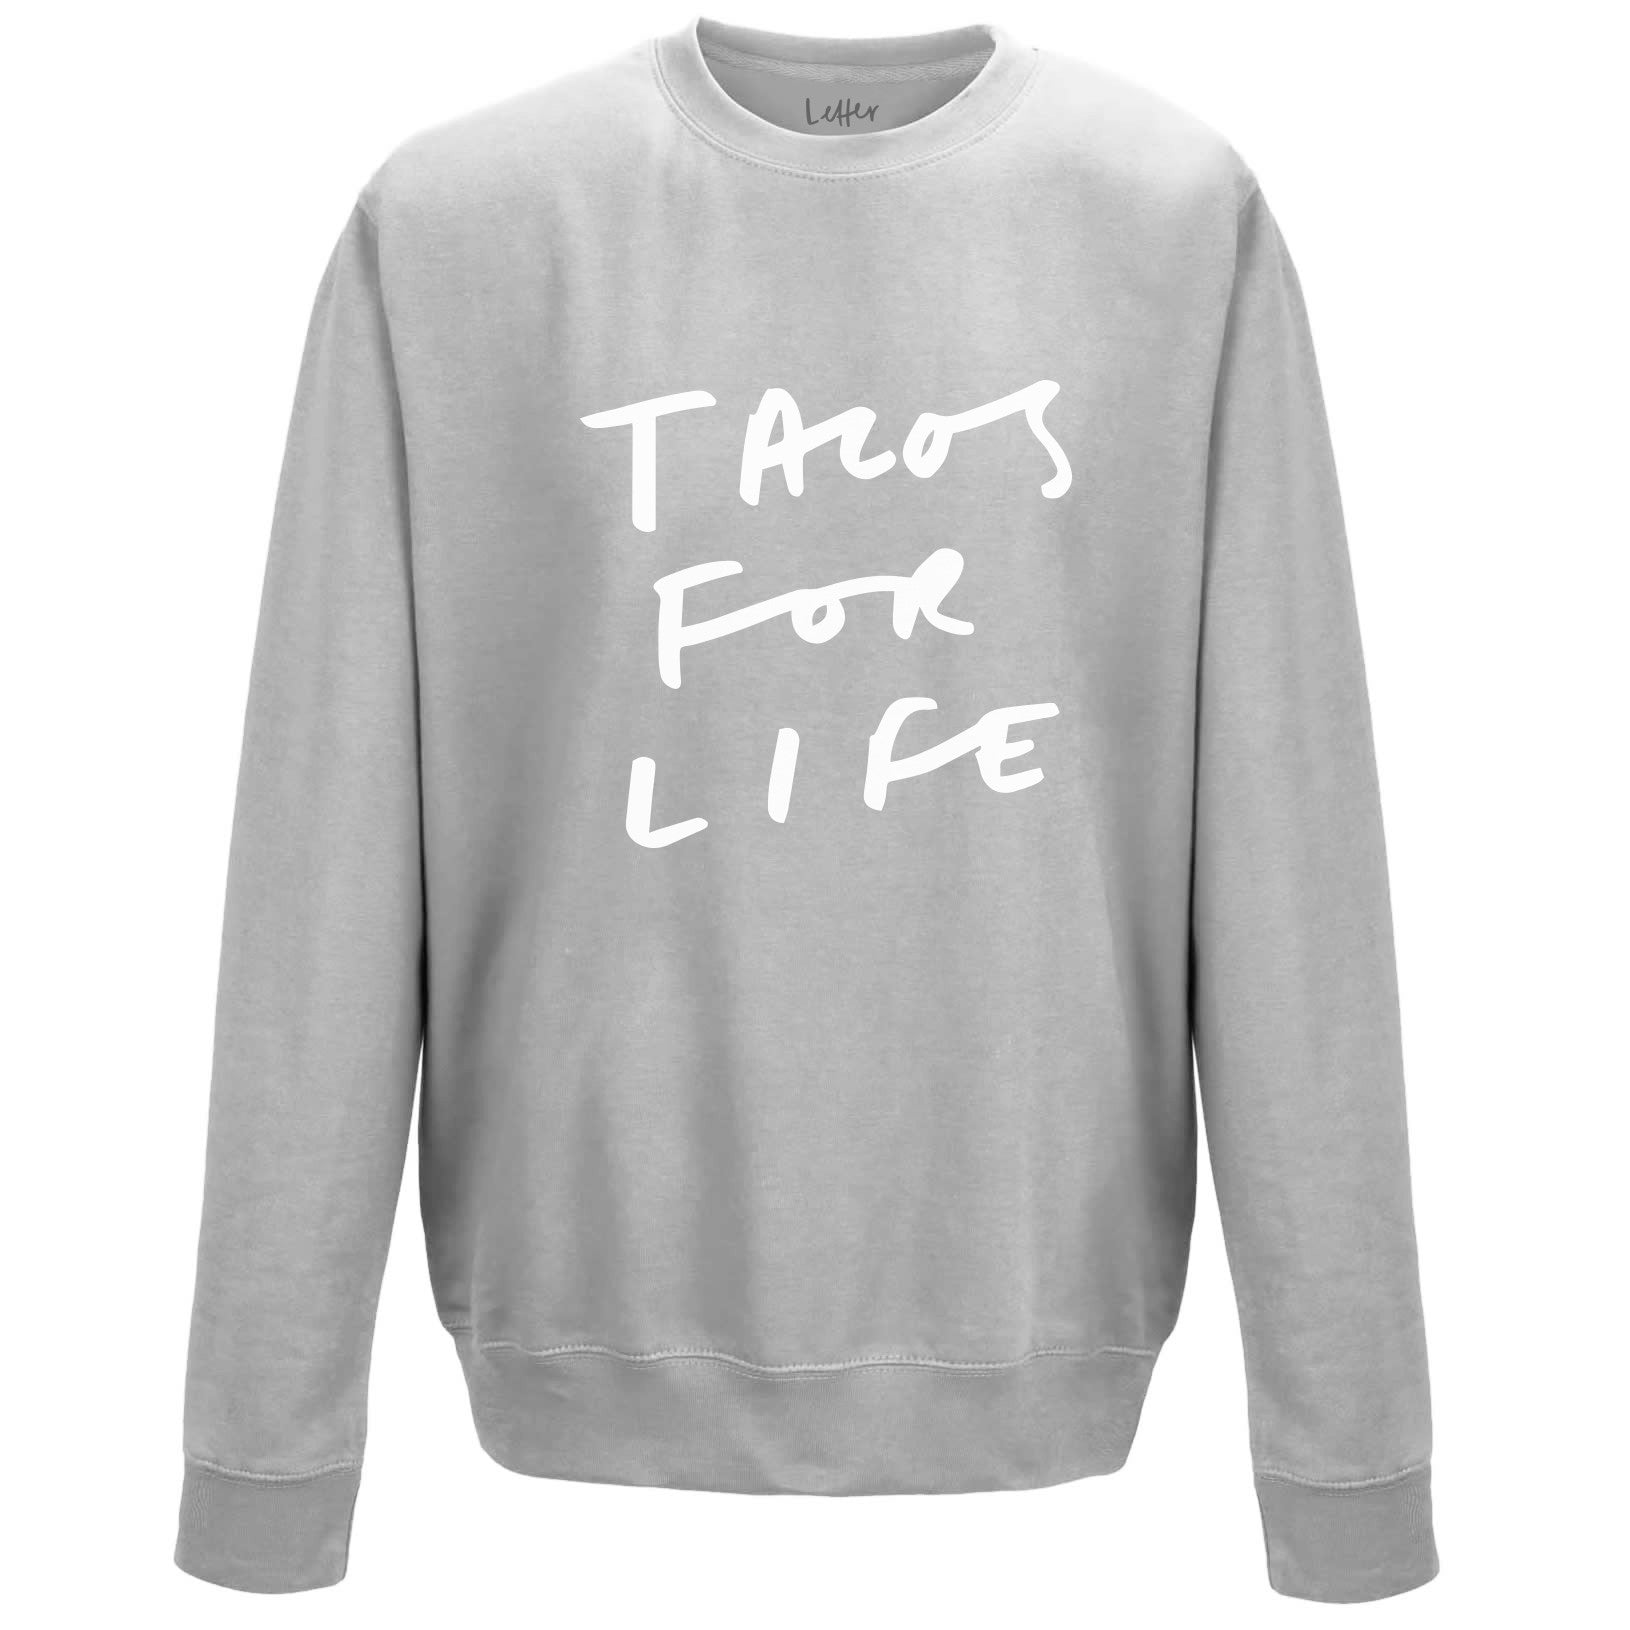 Tacos For Life Unisex Sweatshirt